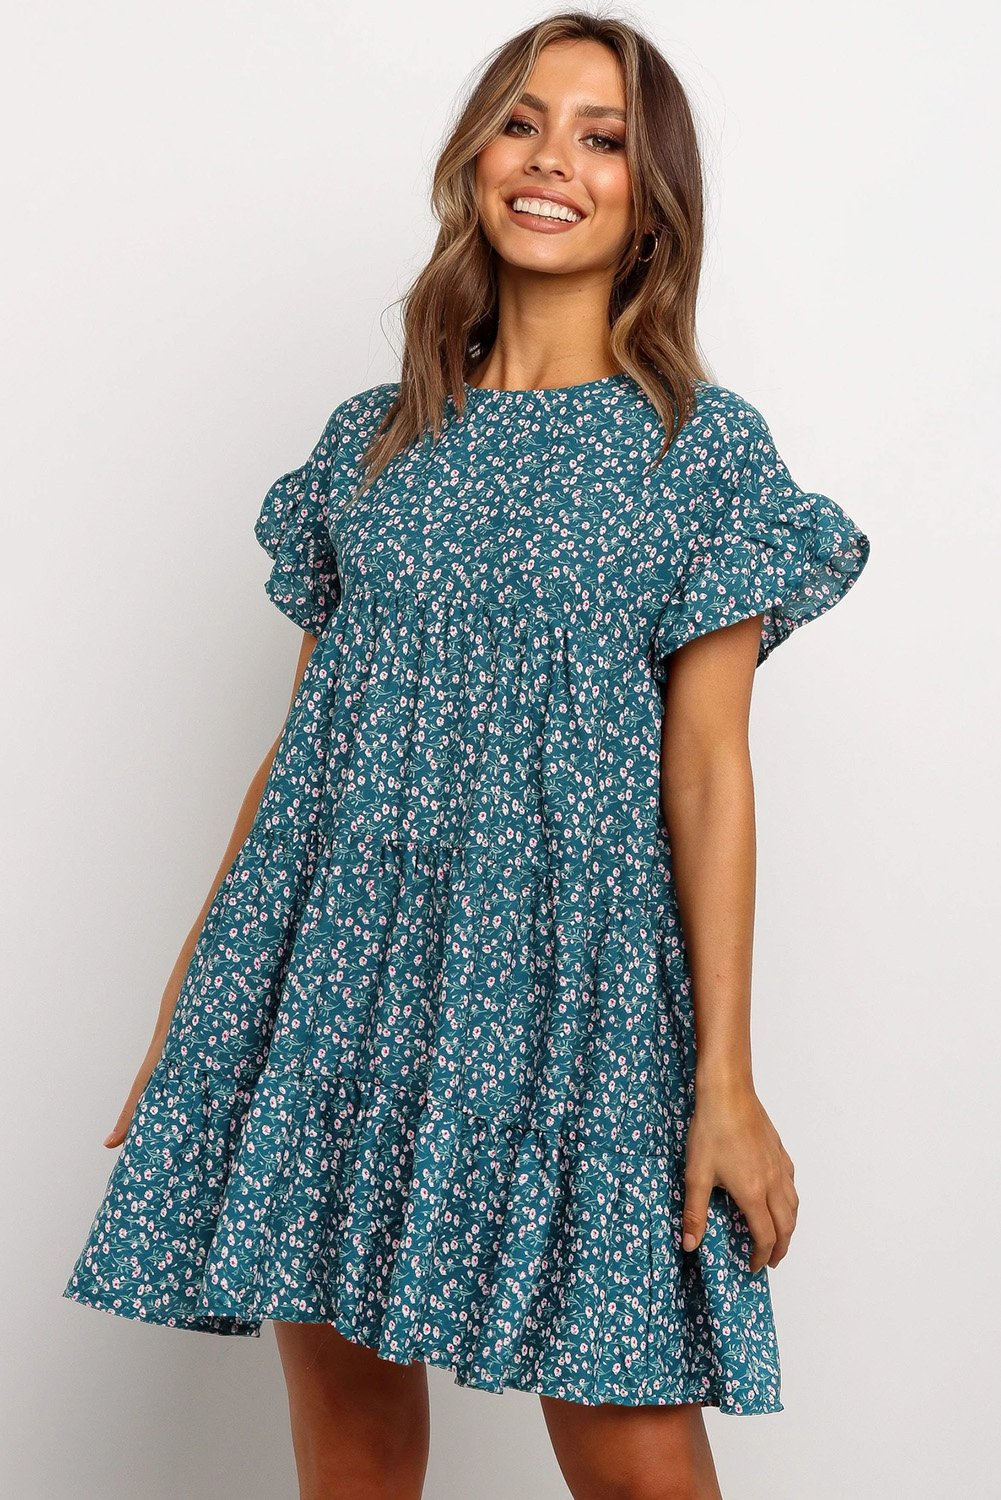 Blue Tiered Gathered Floral Print Short Dress